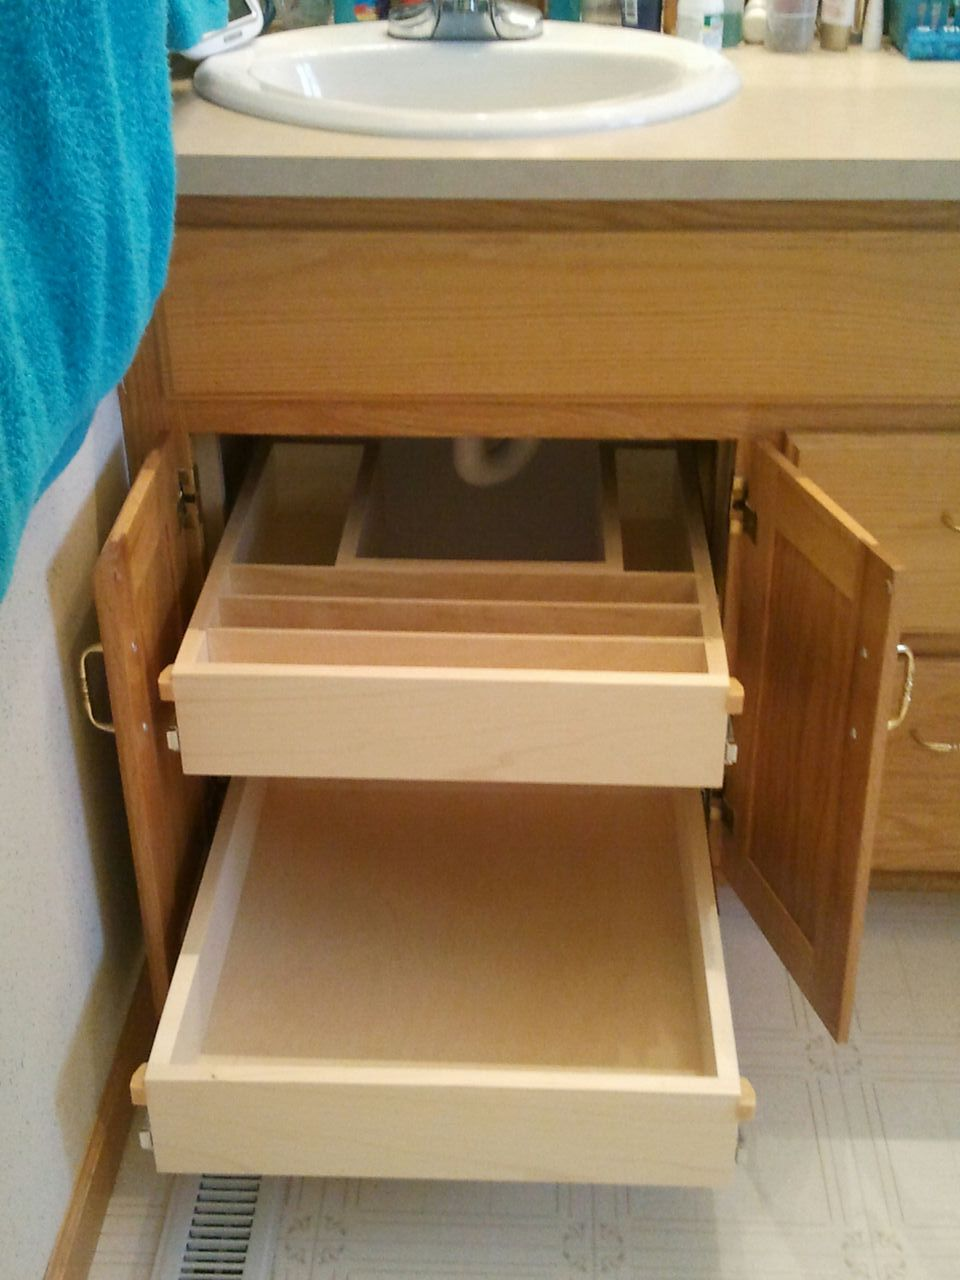 Under Sink Roll Outs Maximize Your Cabinet Space Www Helpyourshelves Com Under Bathroom Sinks Under Sink Organization Bathroom Bathroom Cupboards